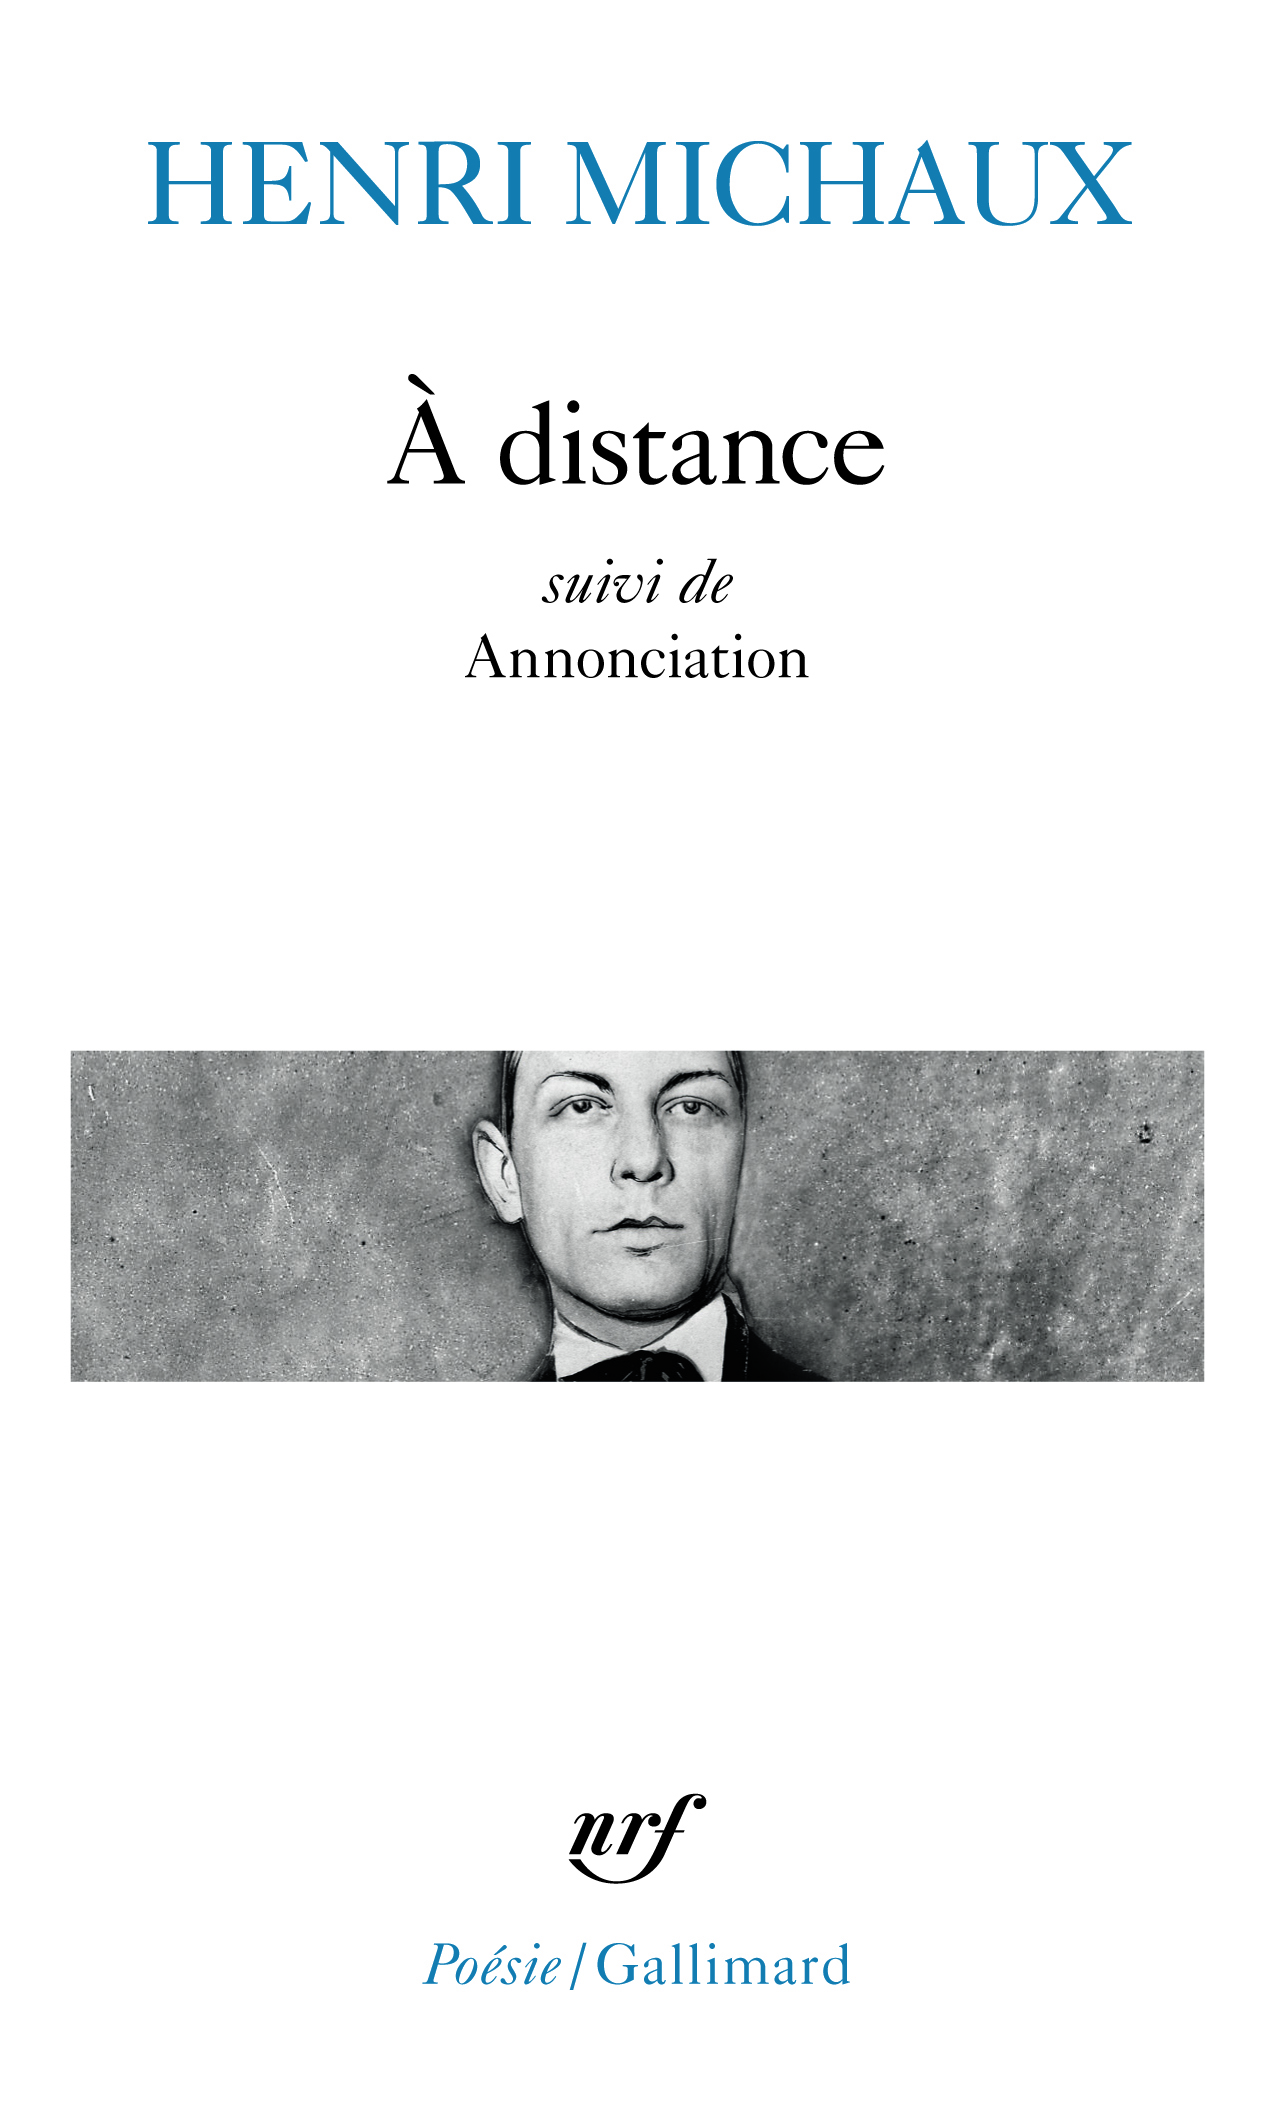 A DISTANCE / ANNONCIATION